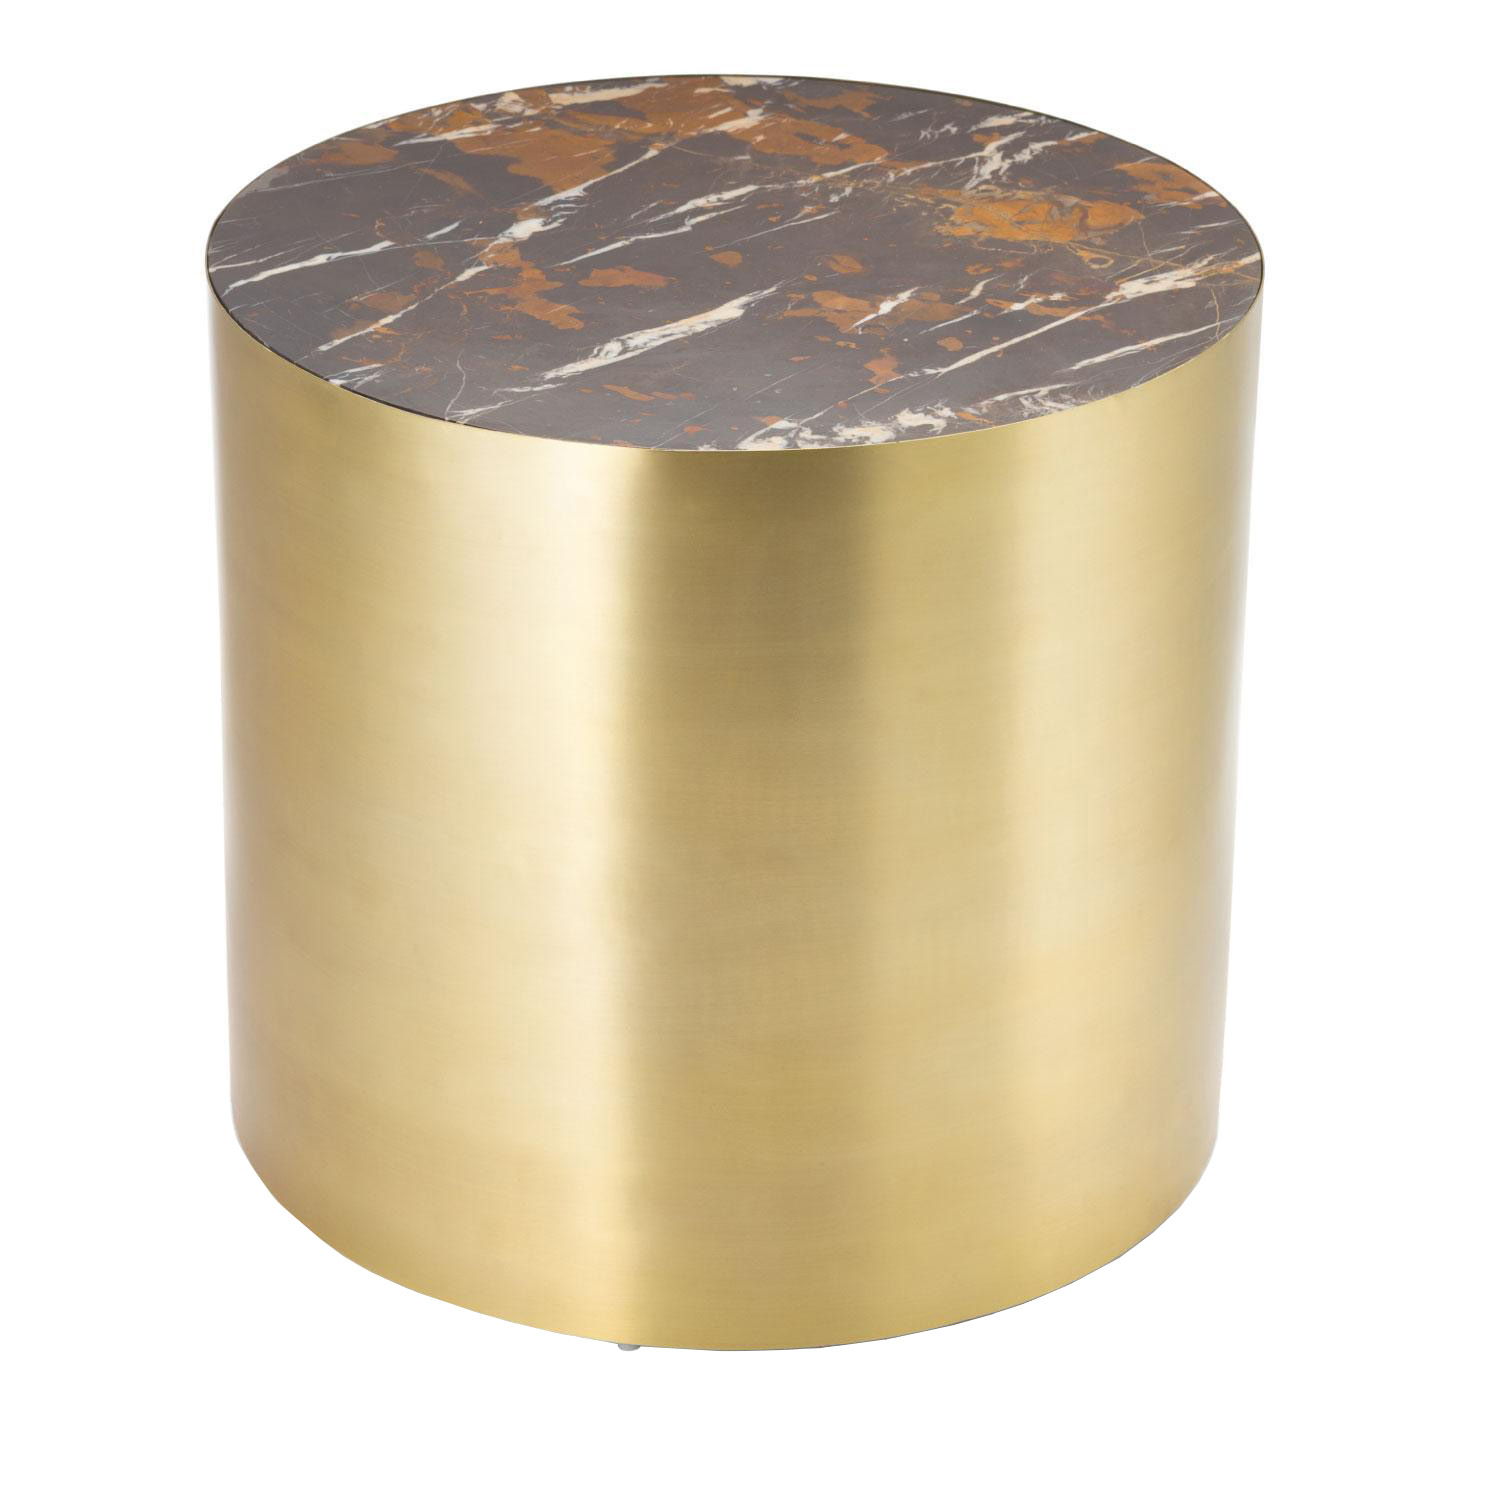 Brass Marble Conan Drum Table Small On Chairish Com Drum Table Mid Century Modern Side Table Side Table